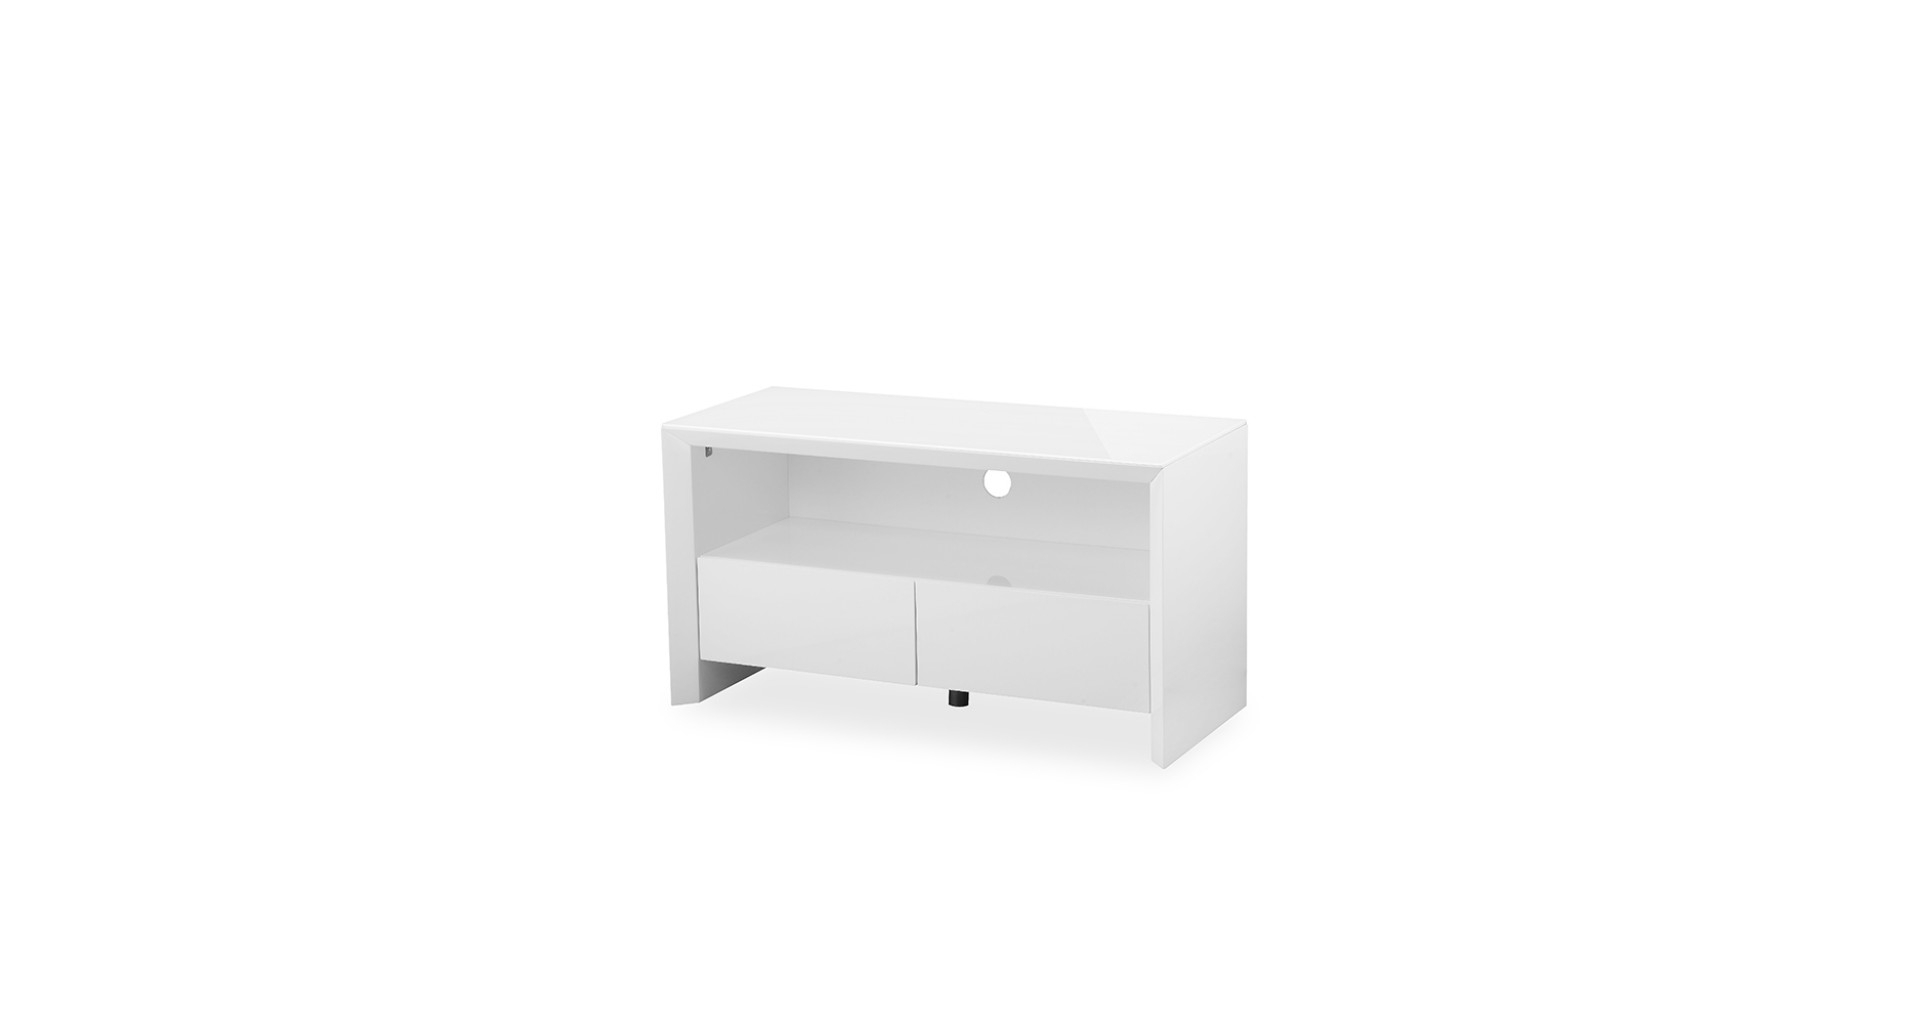 2018 Soho Small Tv Cabinet White – Home Living Intended For Soho Tv Cabinets (Gallery 3 of 20)